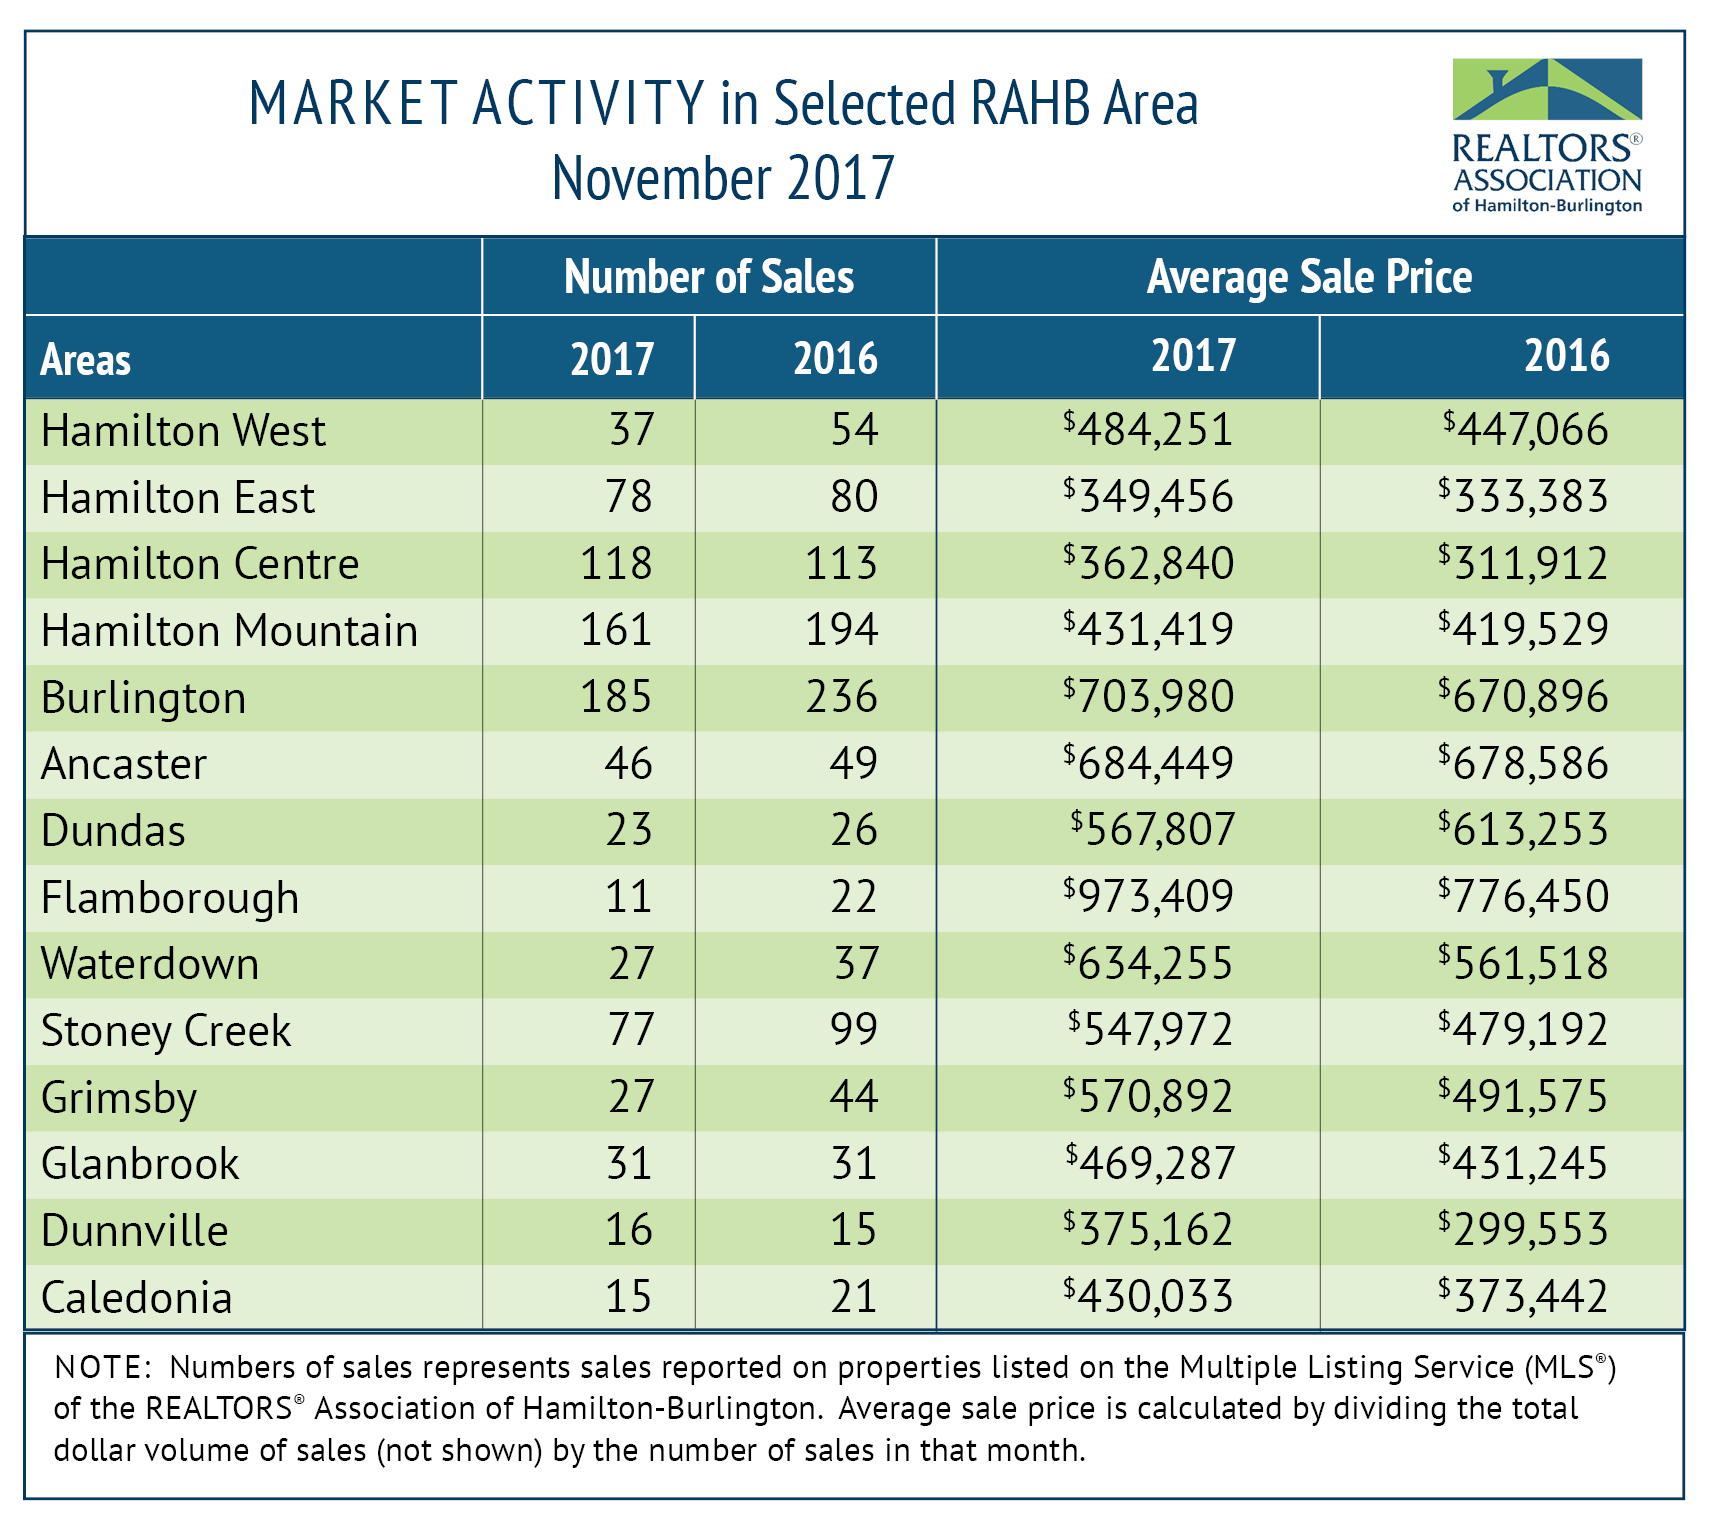 RAHB Market Activity for Nov 2017